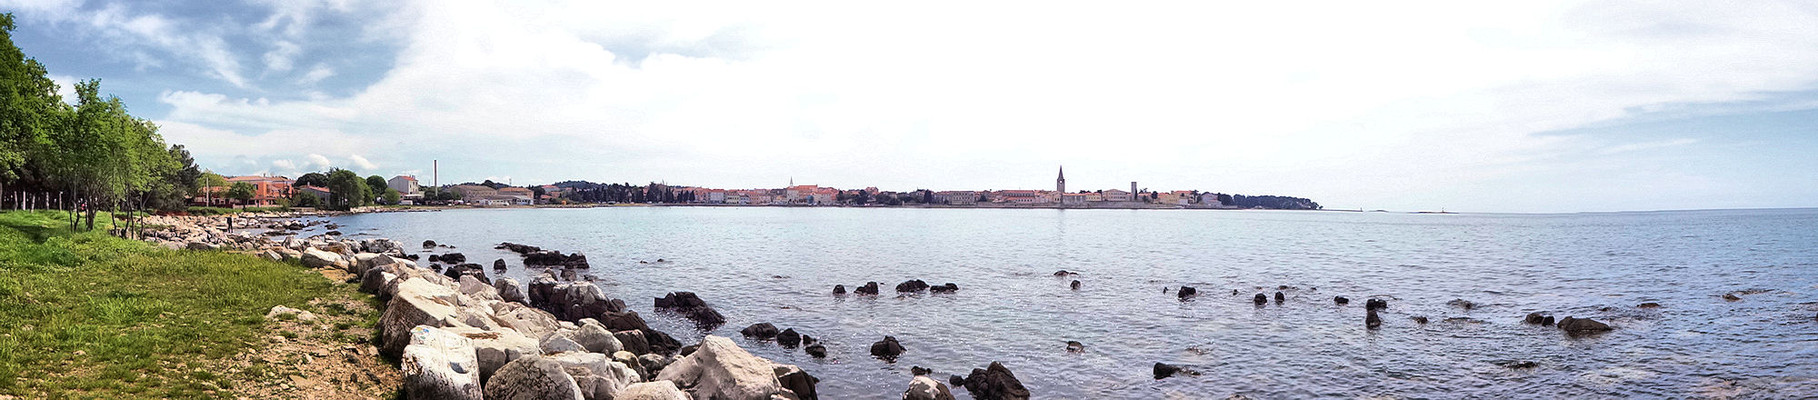 on Tour / Panorama Porec